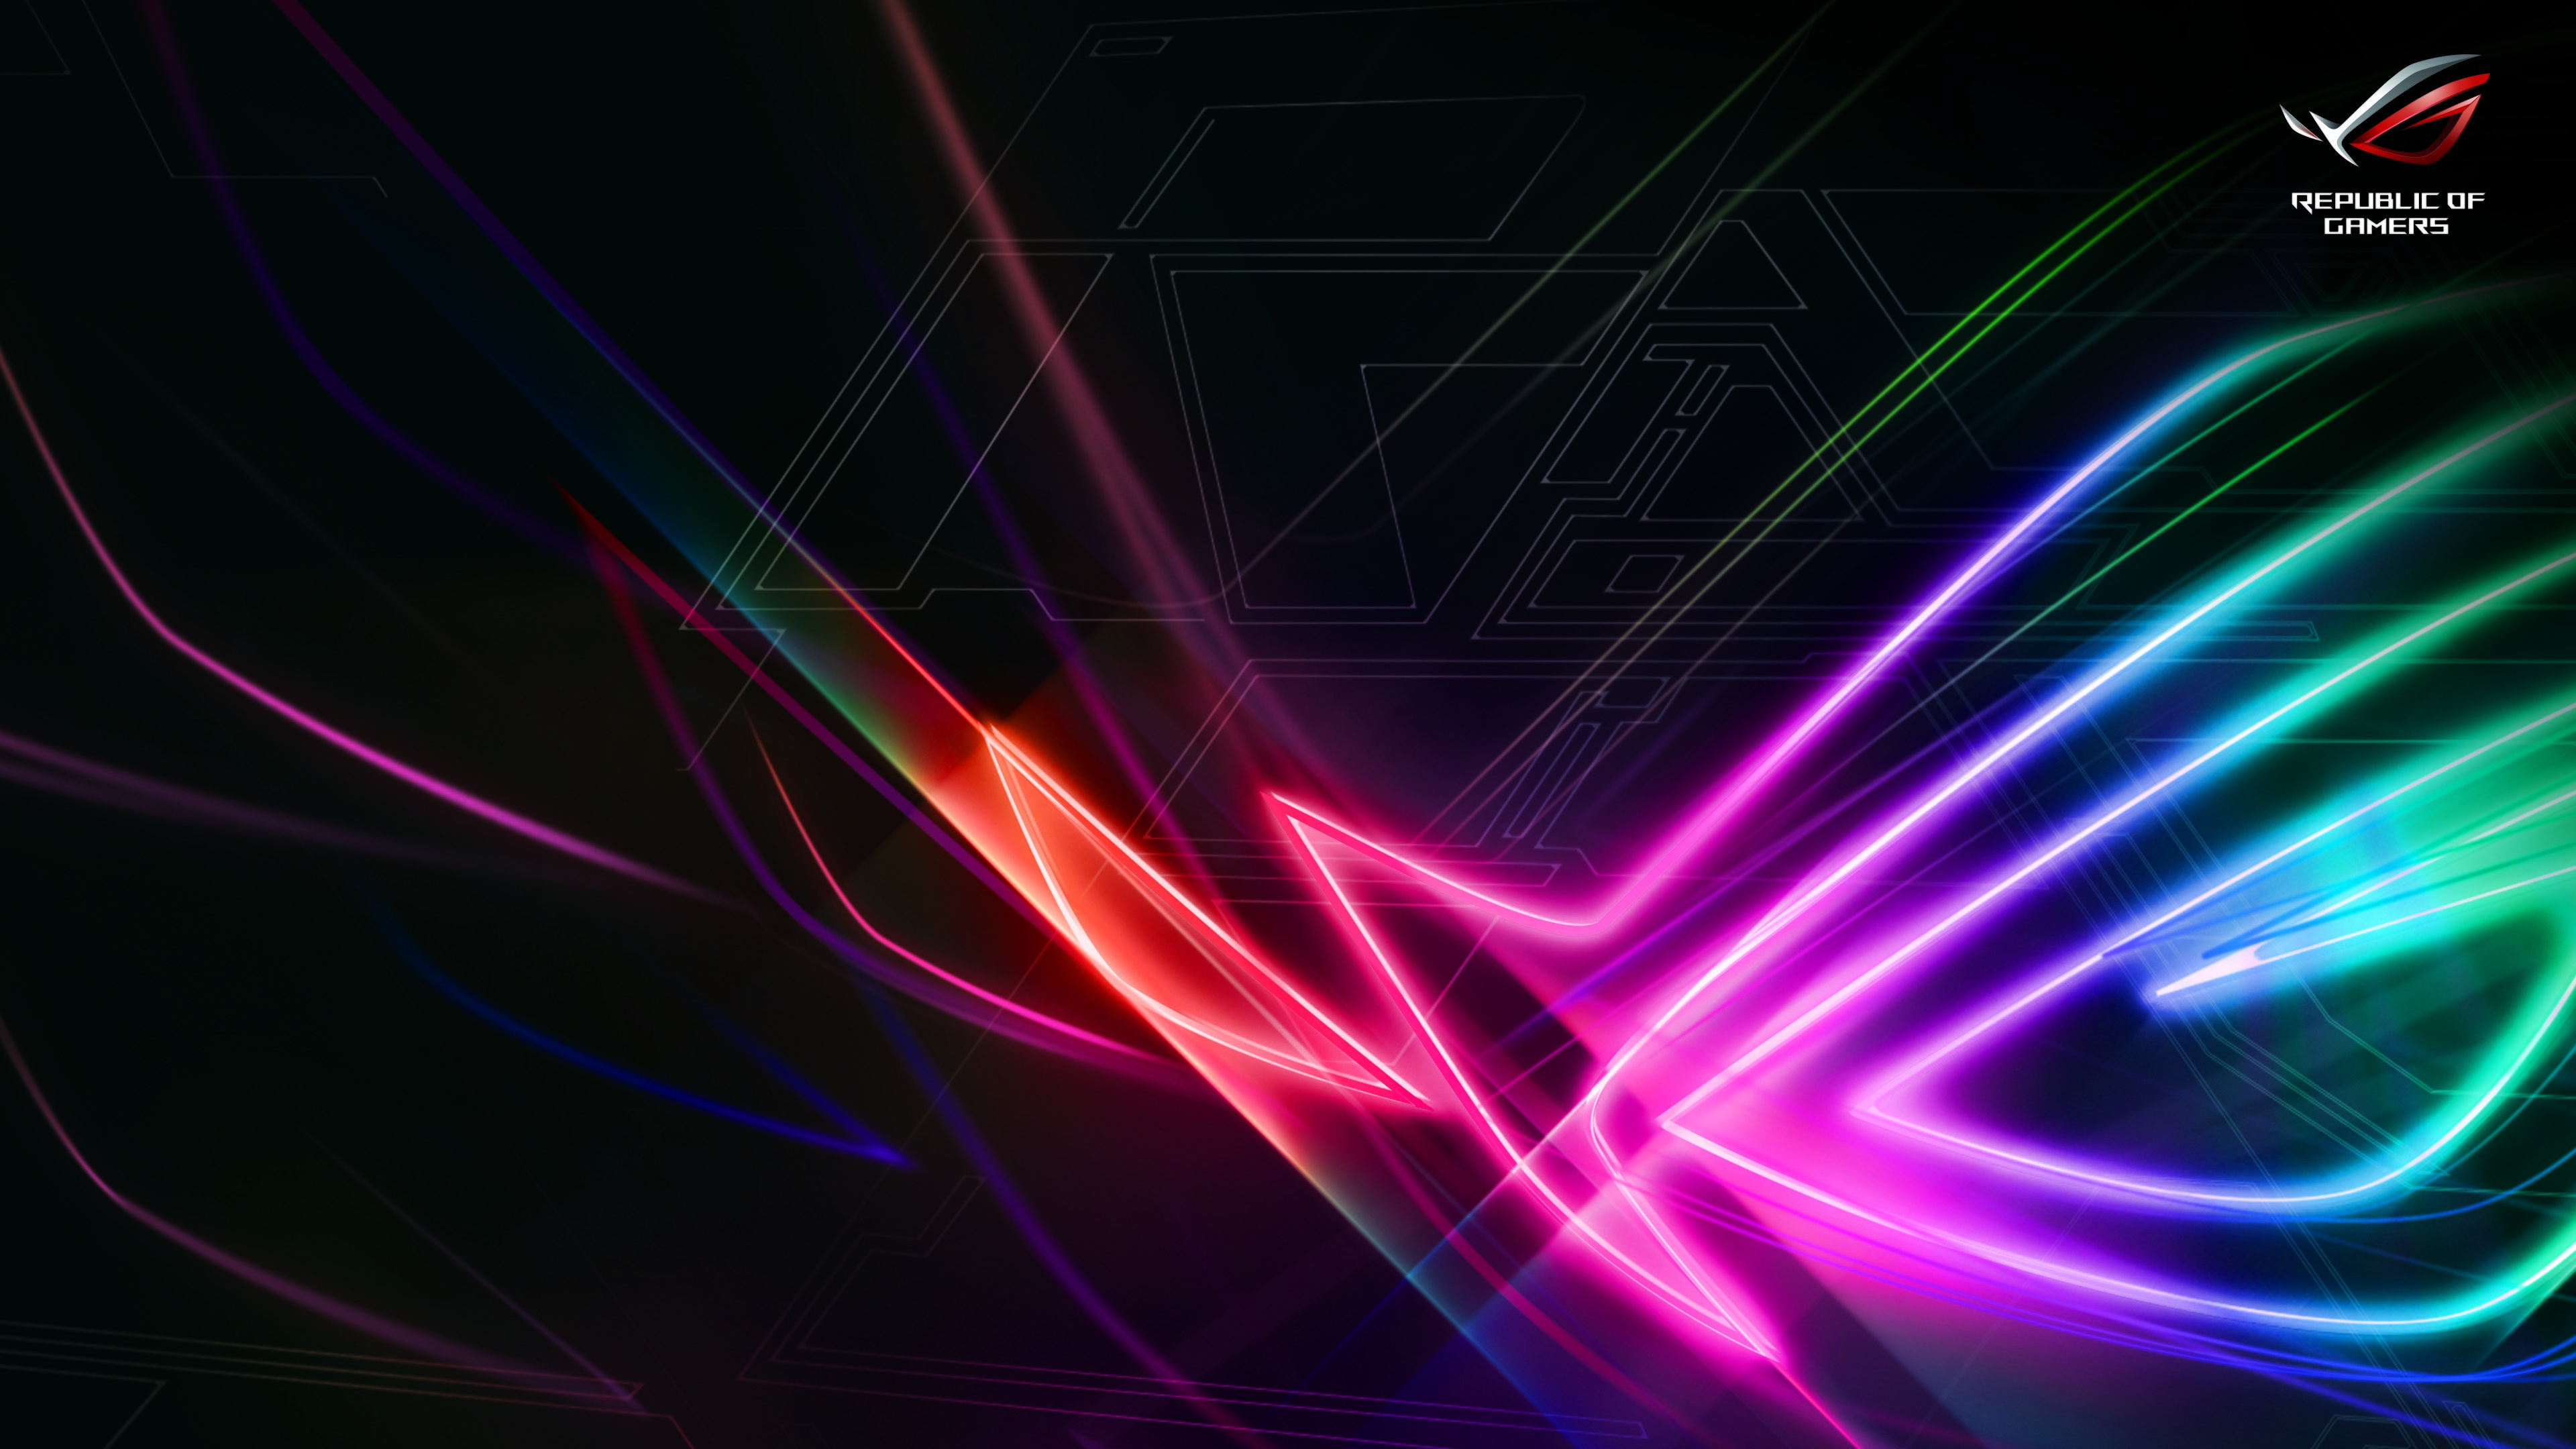 Asus Rog Wallpaper: 4K ASUS ROG (Republic Of Gamers) Strix Logo 3840x2160 UHD